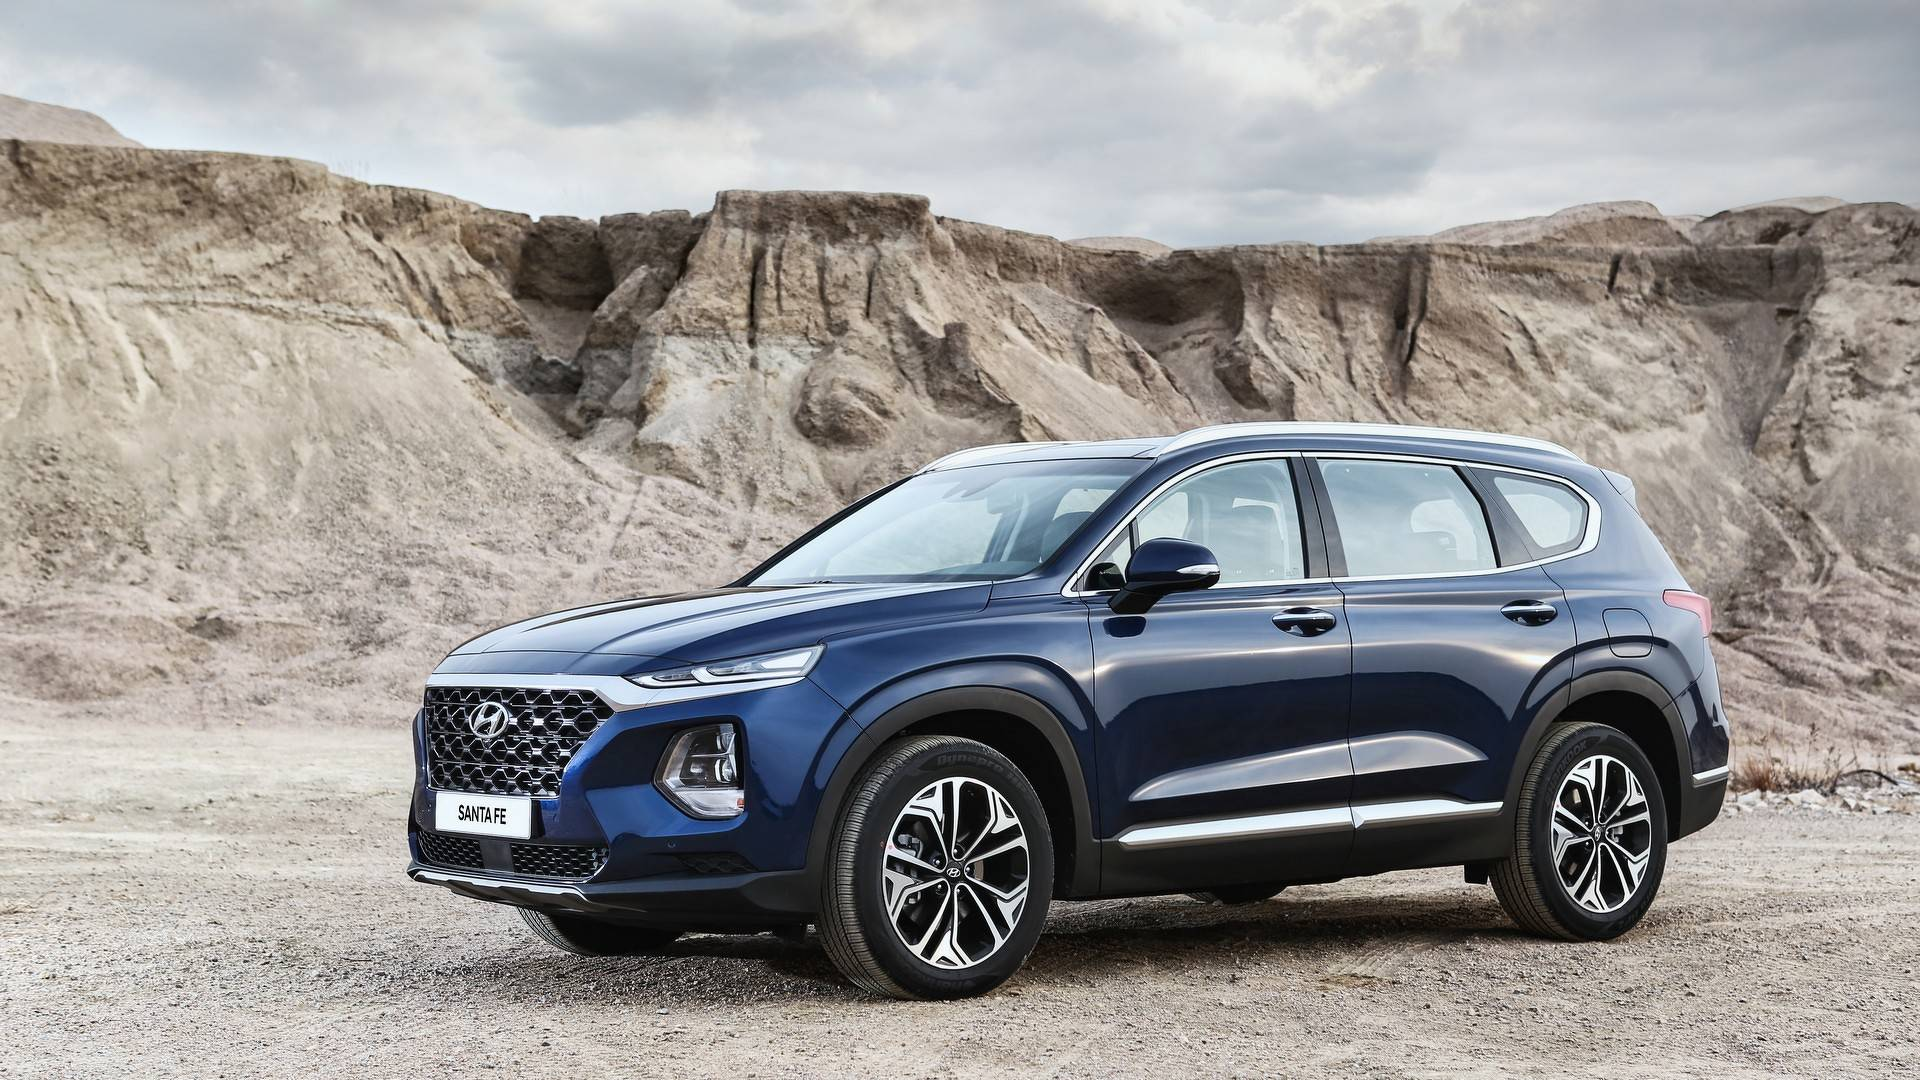 all new 2019 hyundai santa fe officially revealed replaces the santa fe sport. Black Bedroom Furniture Sets. Home Design Ideas